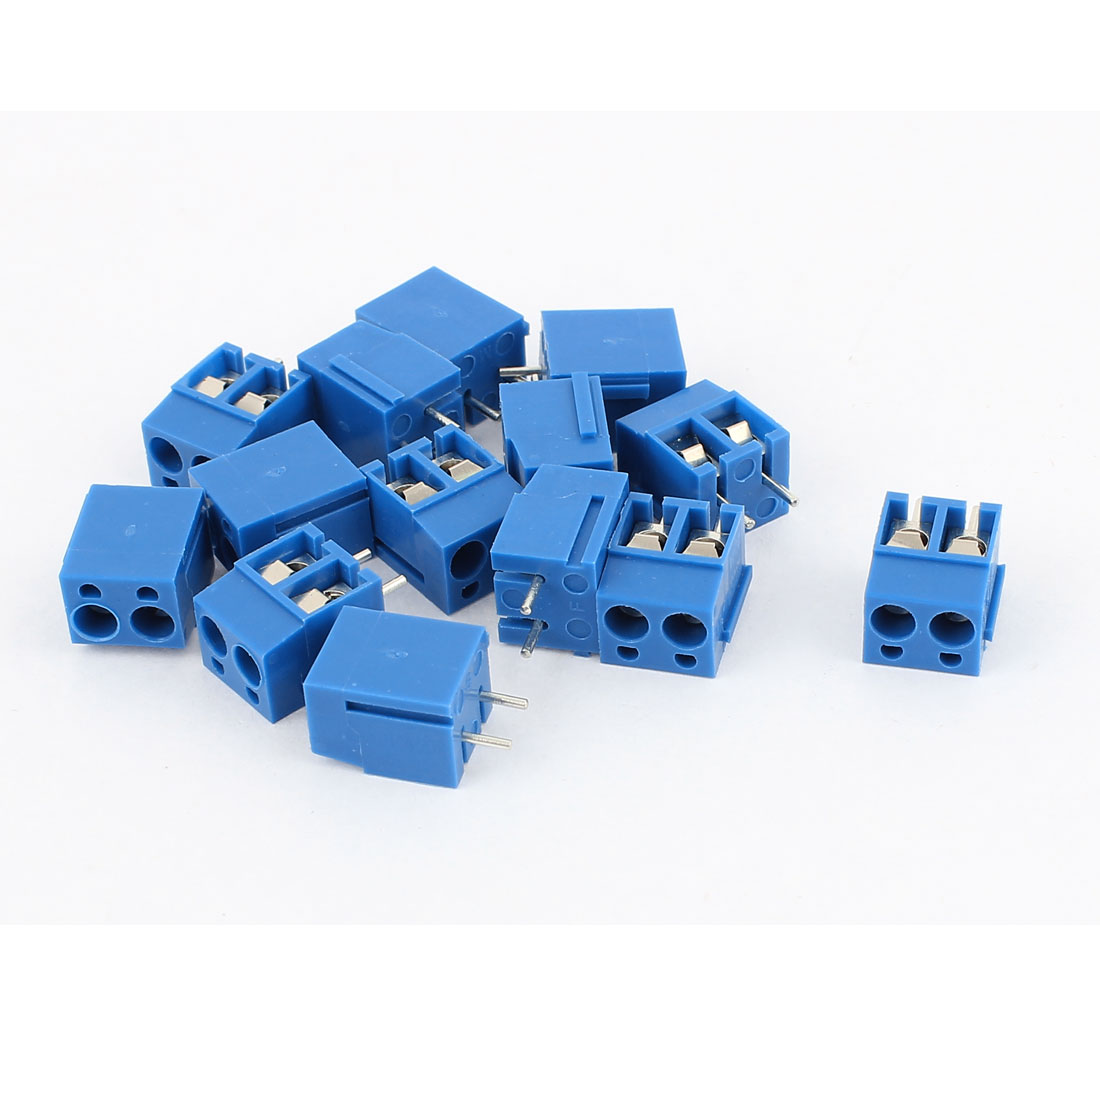 14Pcs AWG 22-14 AC 300V 10A PCB Mount Screw Terminal Block Blue